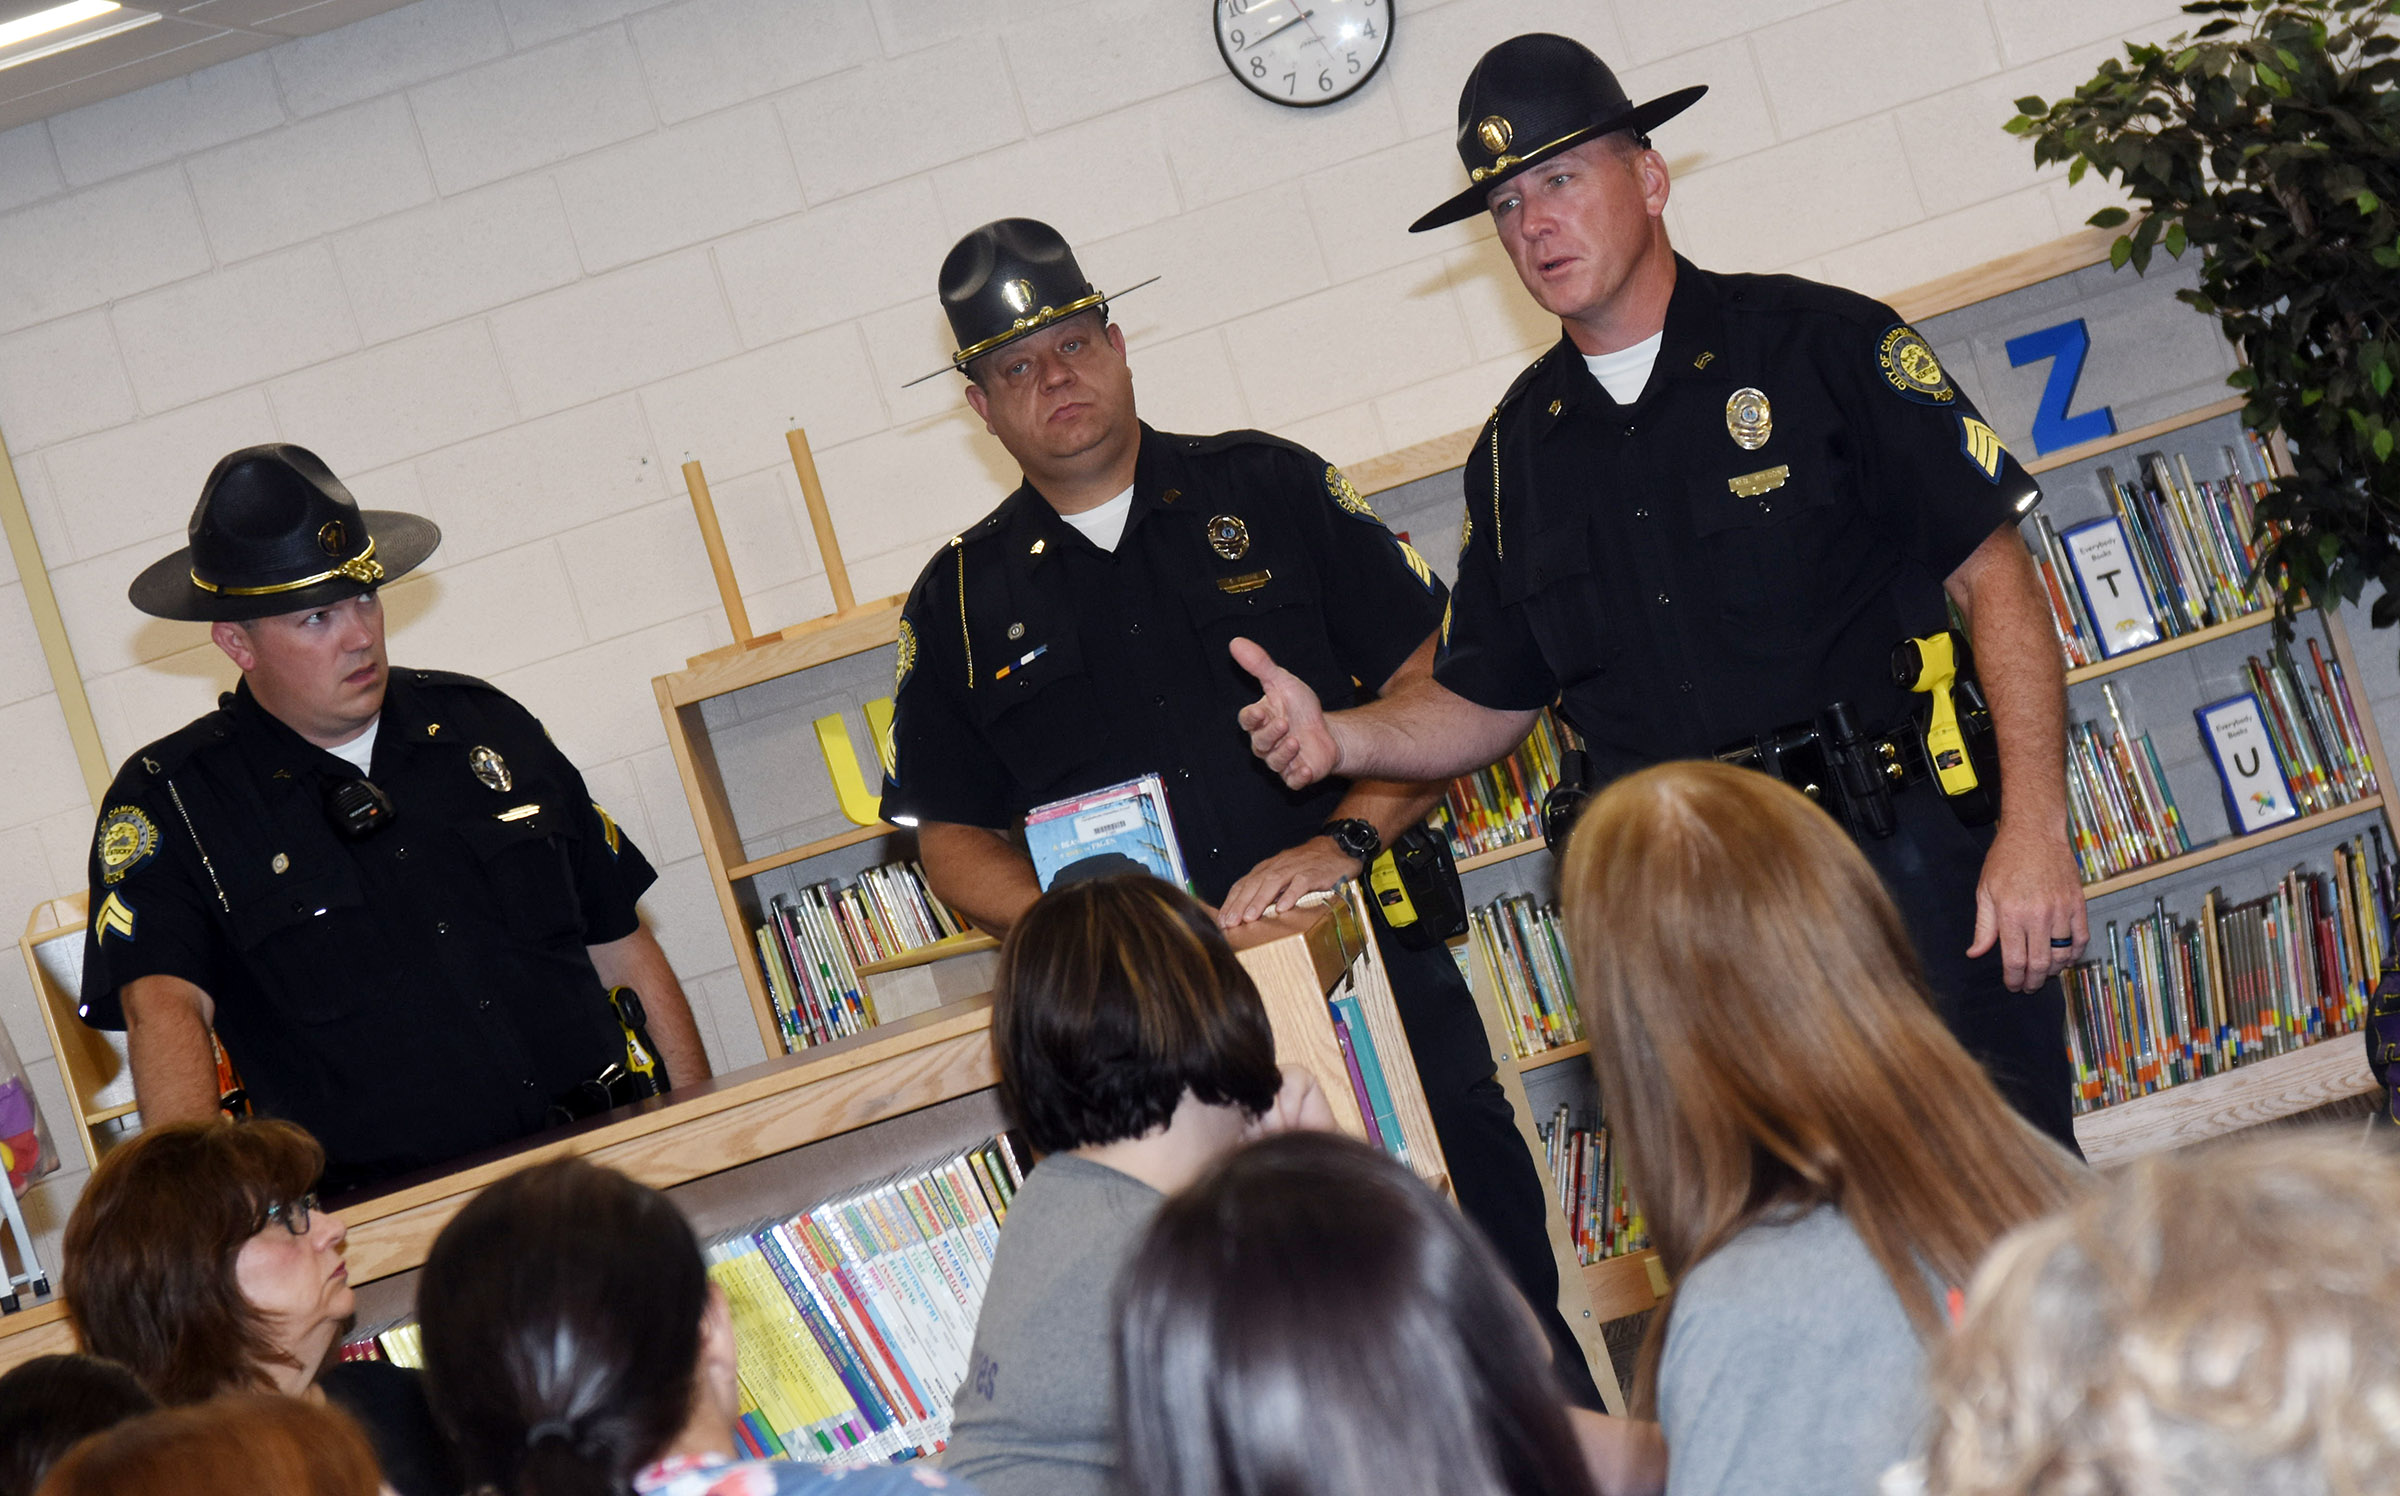 Campbellsville Independent Schools' staff members underwent active shooter training recently with Campbellsville Police officers. Above, from left, Brian Morgan, Scotty Perian and Shannon Wilson talk to CES staff members.